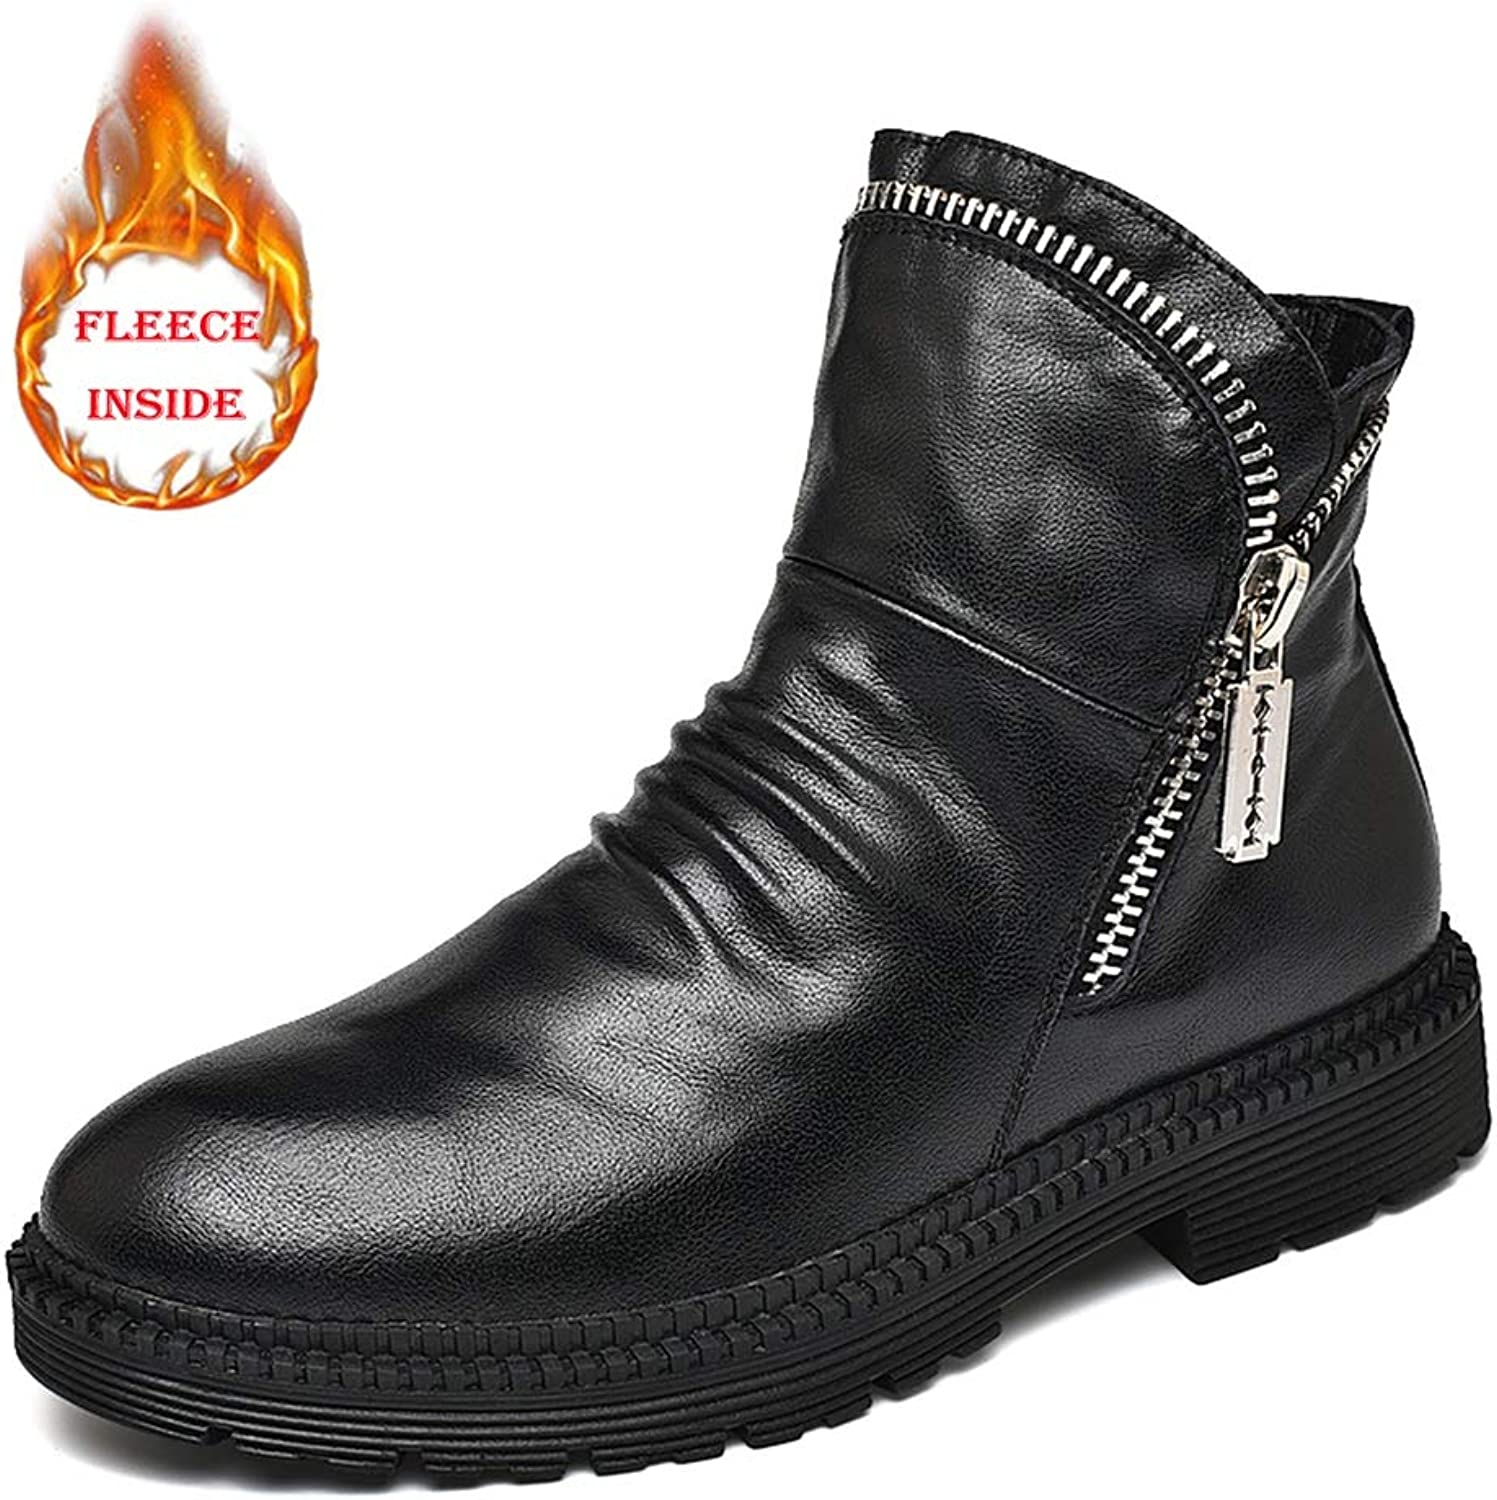 Dig dog bone Men's Fashion Work Ankle Boots Casual Personality Retro Zipper Fleece Lined High Top Martin Boot